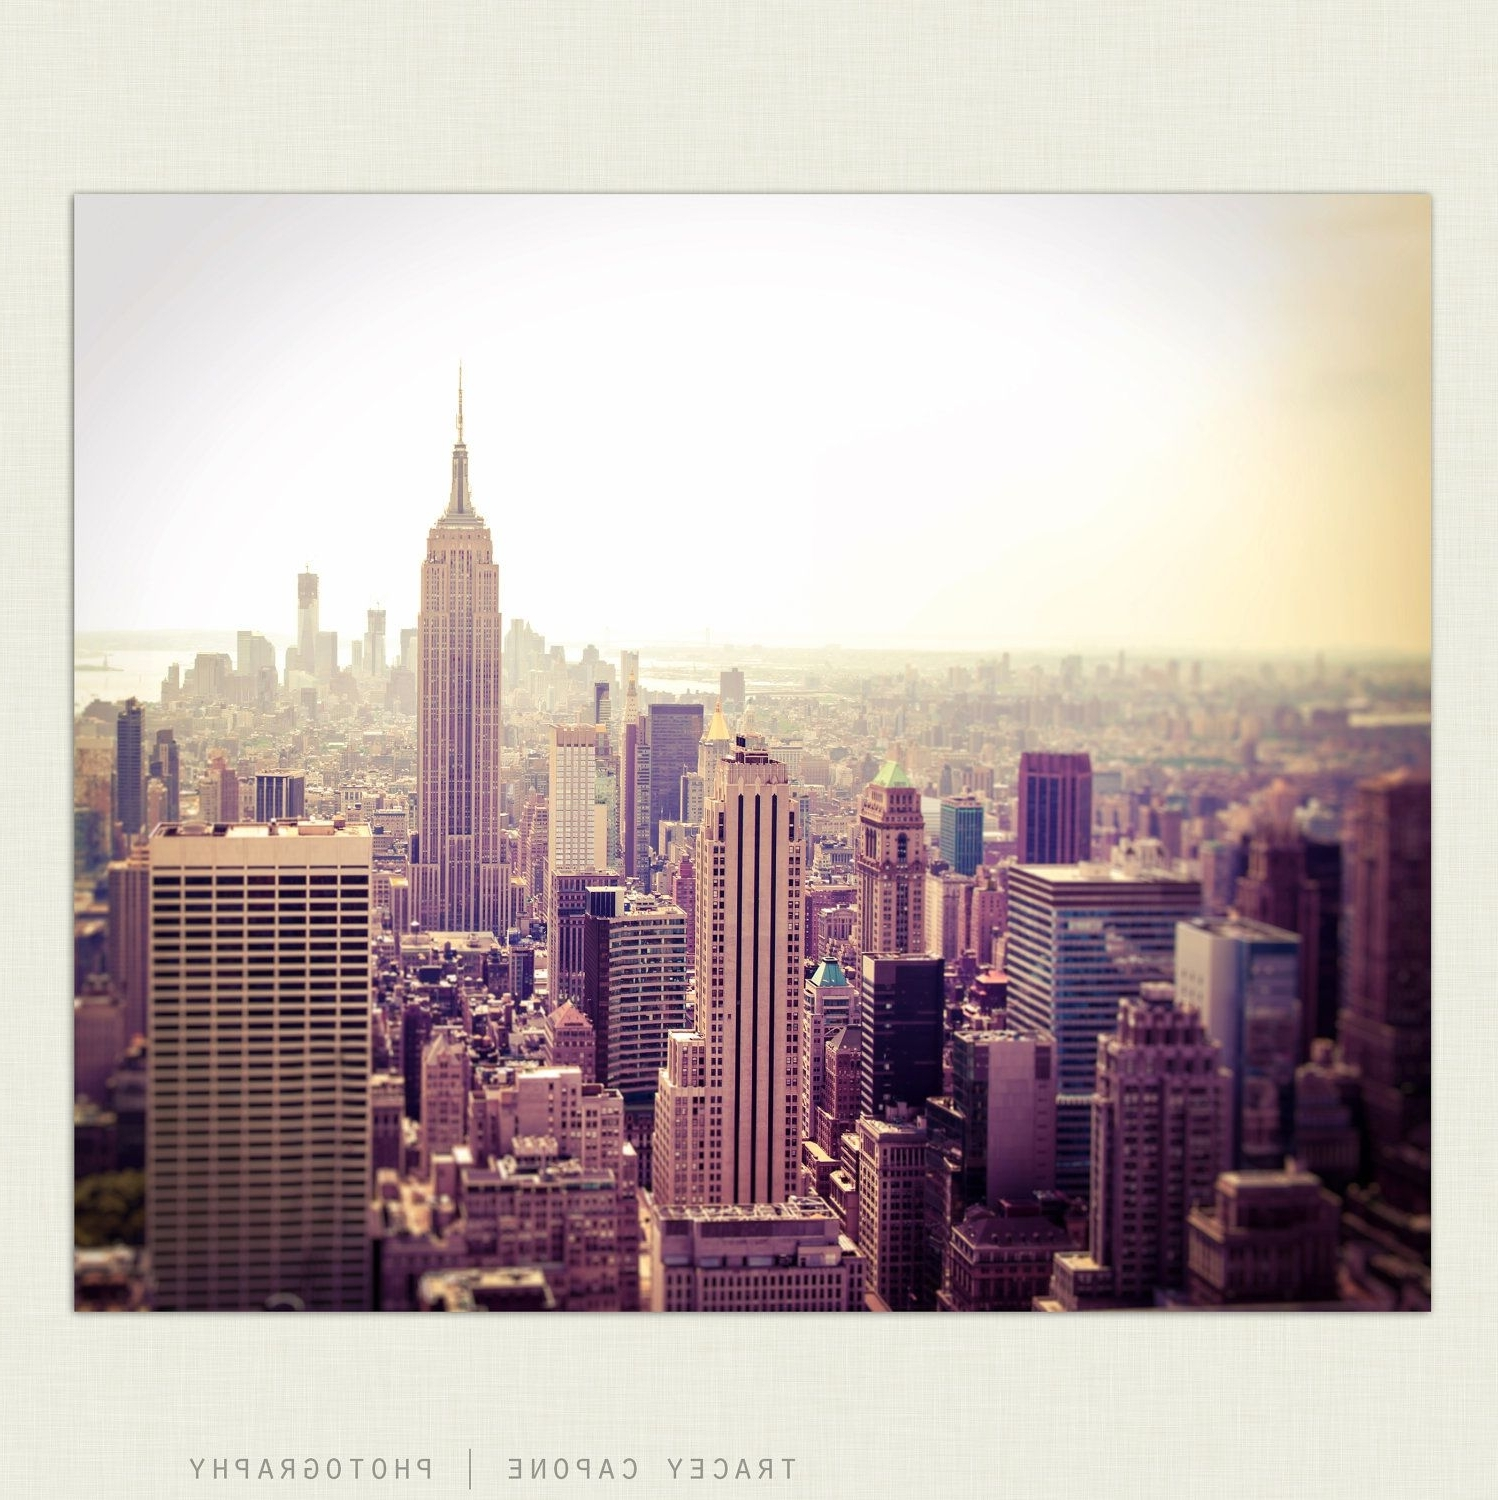 Well Known Nyc Wall Art For New York City Photography – Retro Inspired, Etsy Wall Art – The City (View 20 of 20)